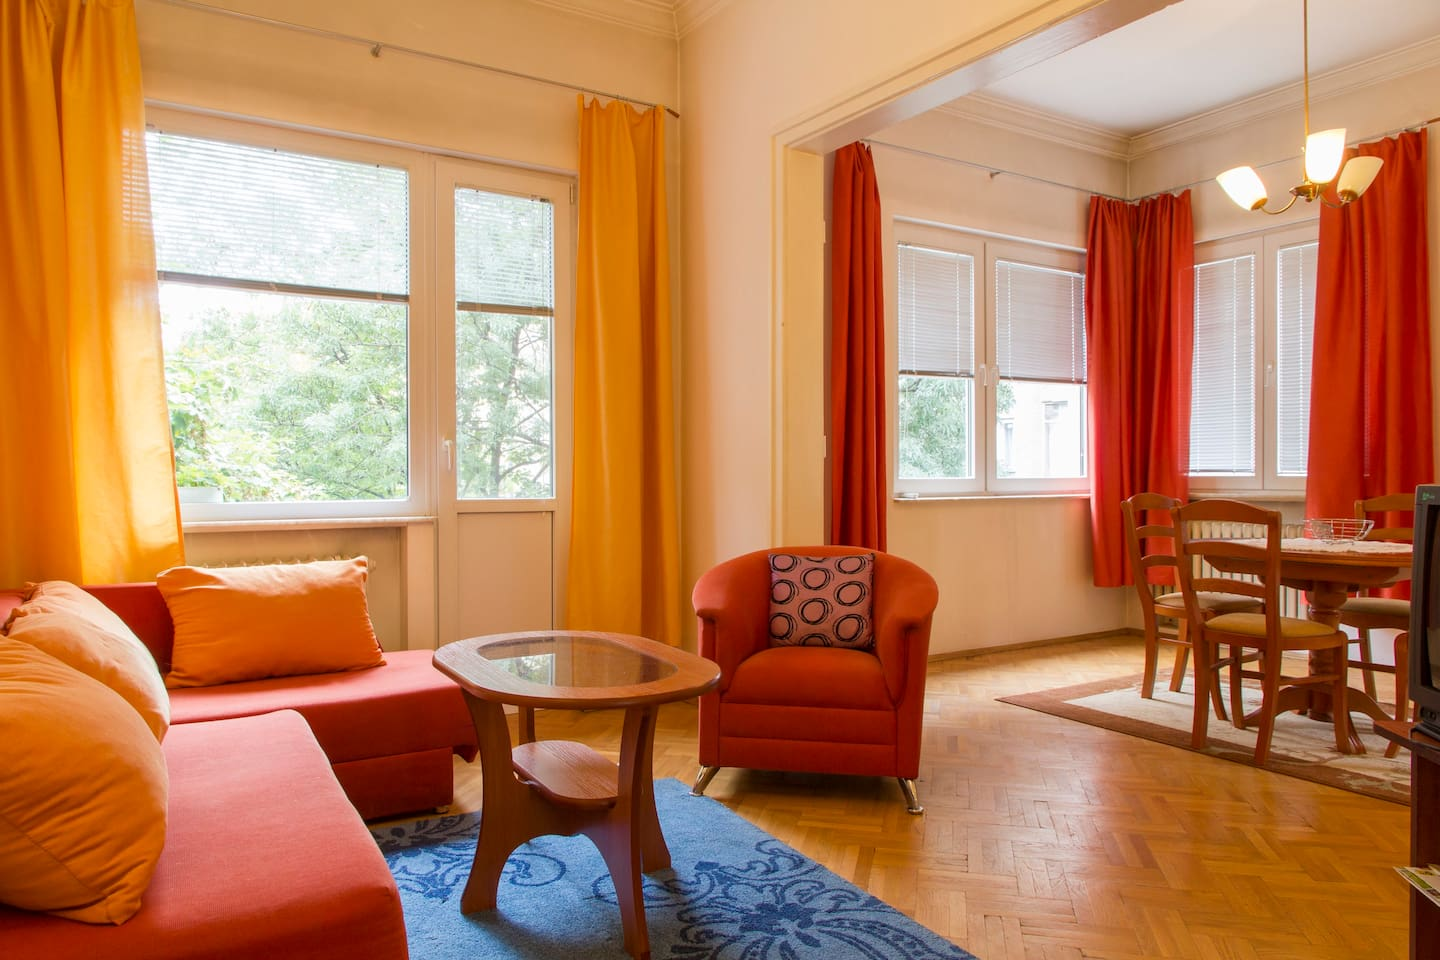 Living room -AC, with access to the balcony, comfortable sofa-bed for a person, TV